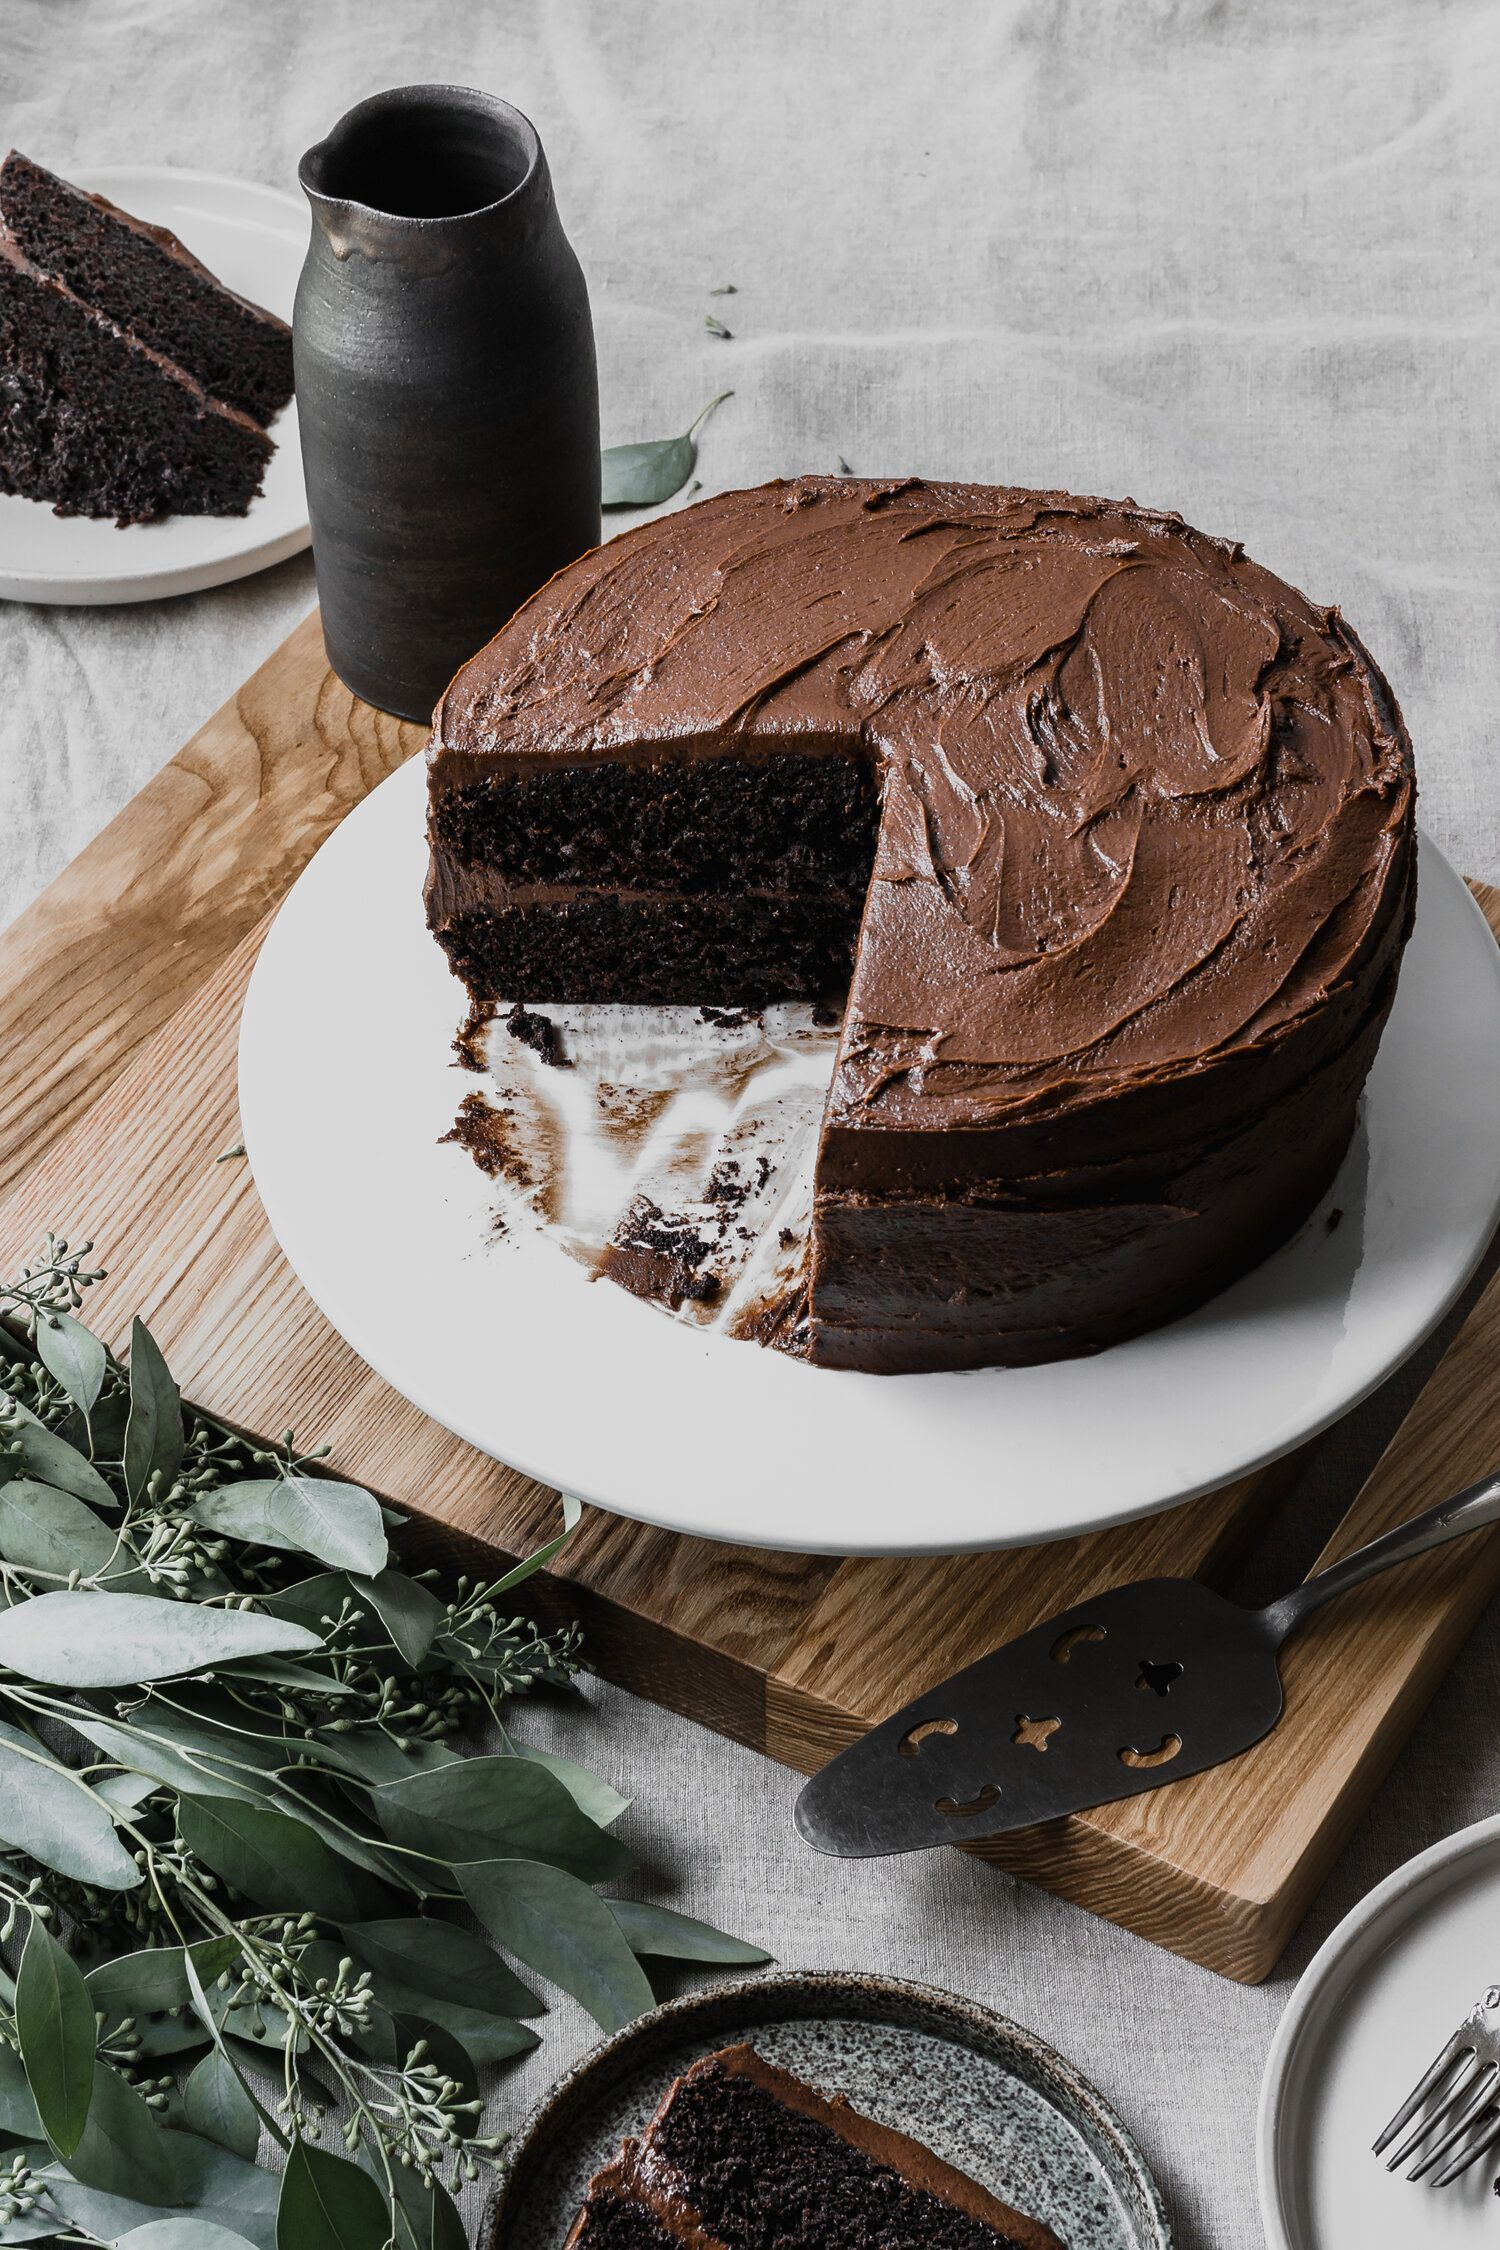 Gluten Free Chocolate Cake The Only Podge Recipe In 2020 Gluten Free Chocolate Cake Sour Cream Recipes Chocolate Fudge Icing